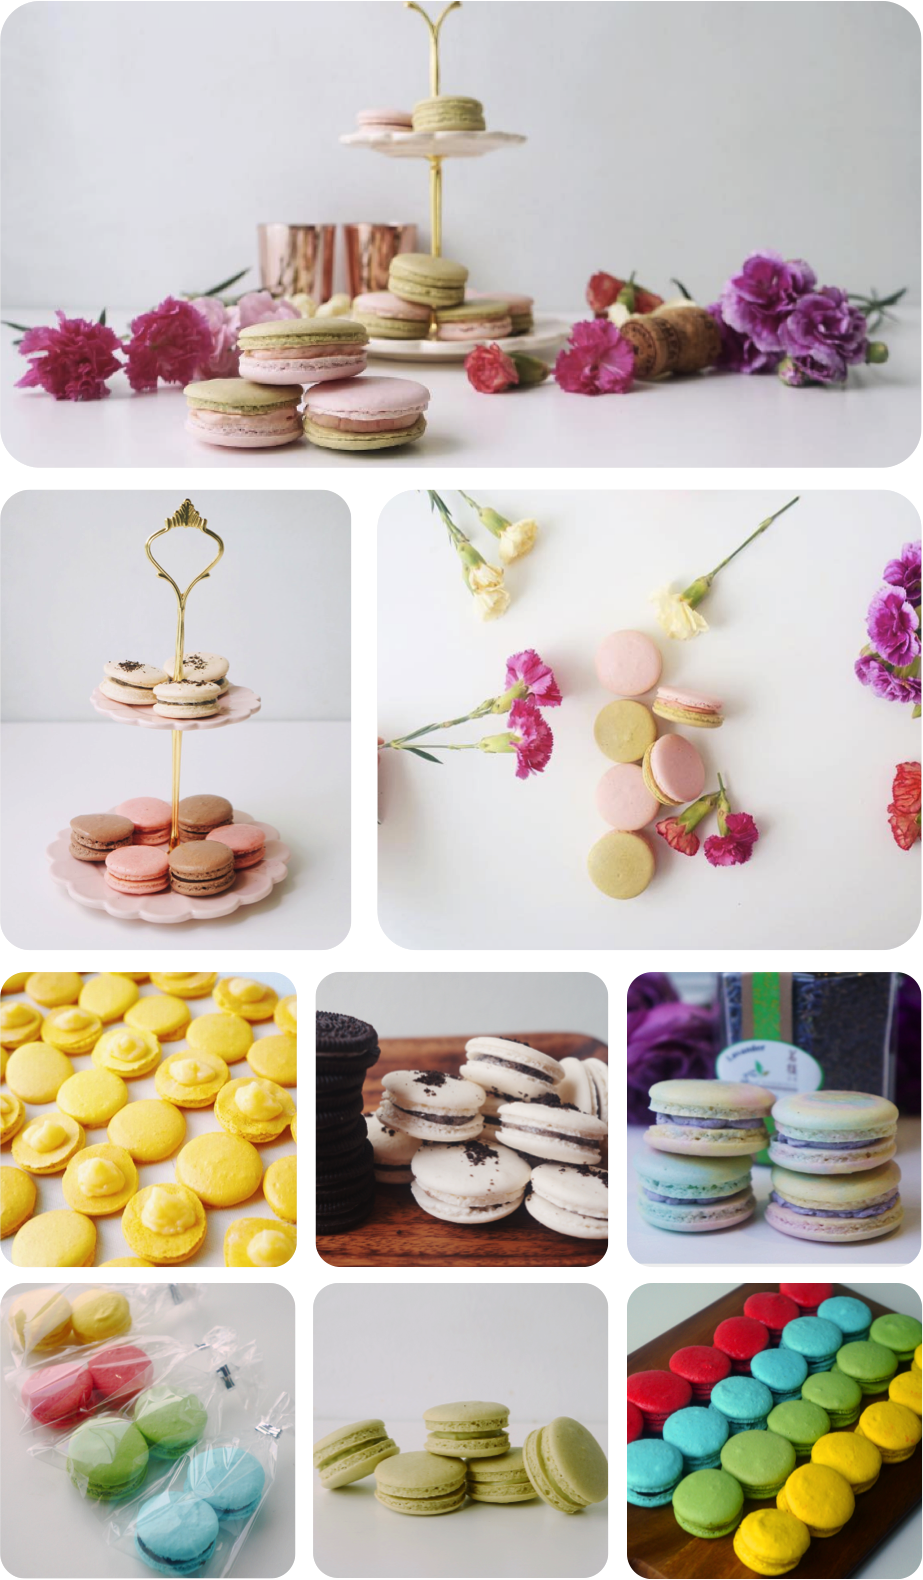 online bakery singapore macarons